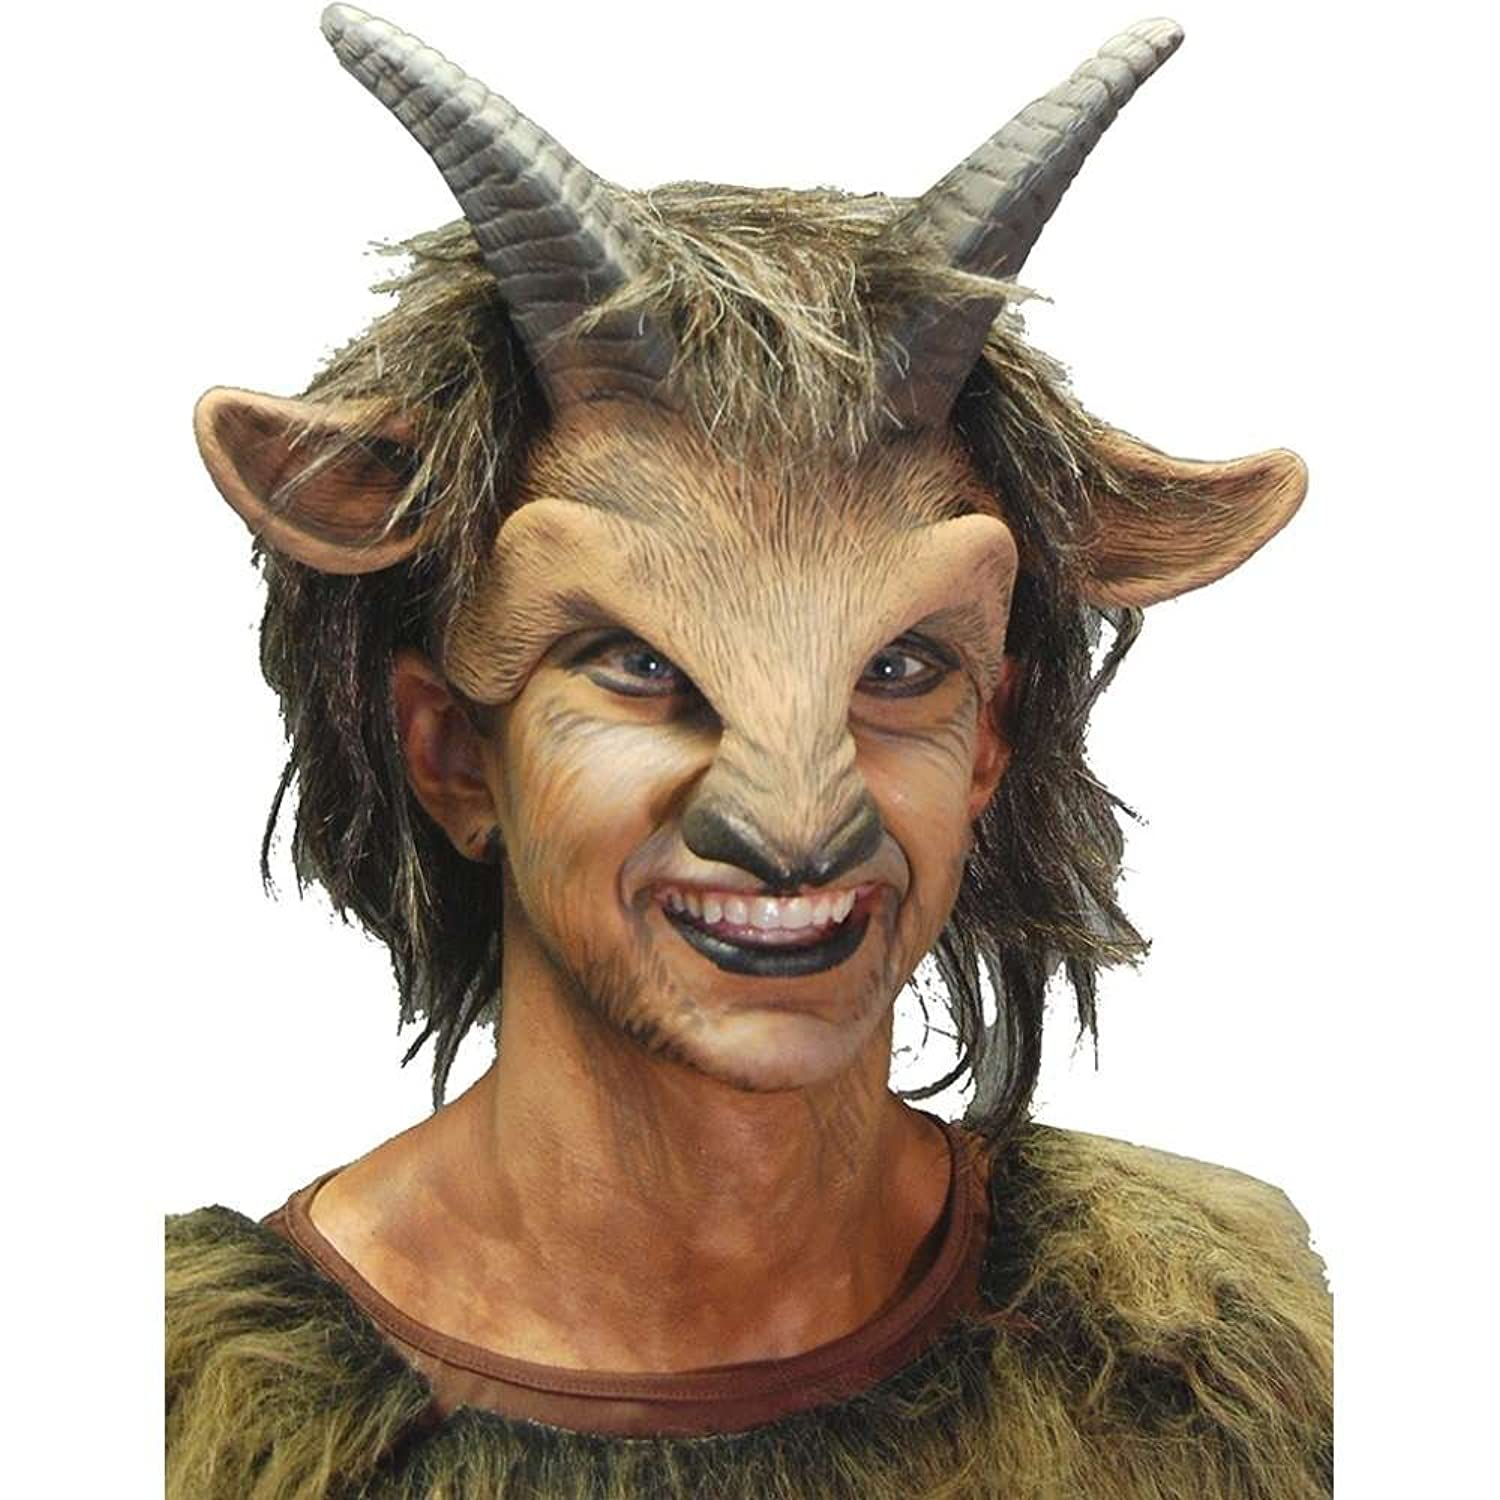 Amazon.com: Zagone Goat Boy Mask, Horns, Nose, and Hair, Animal ...